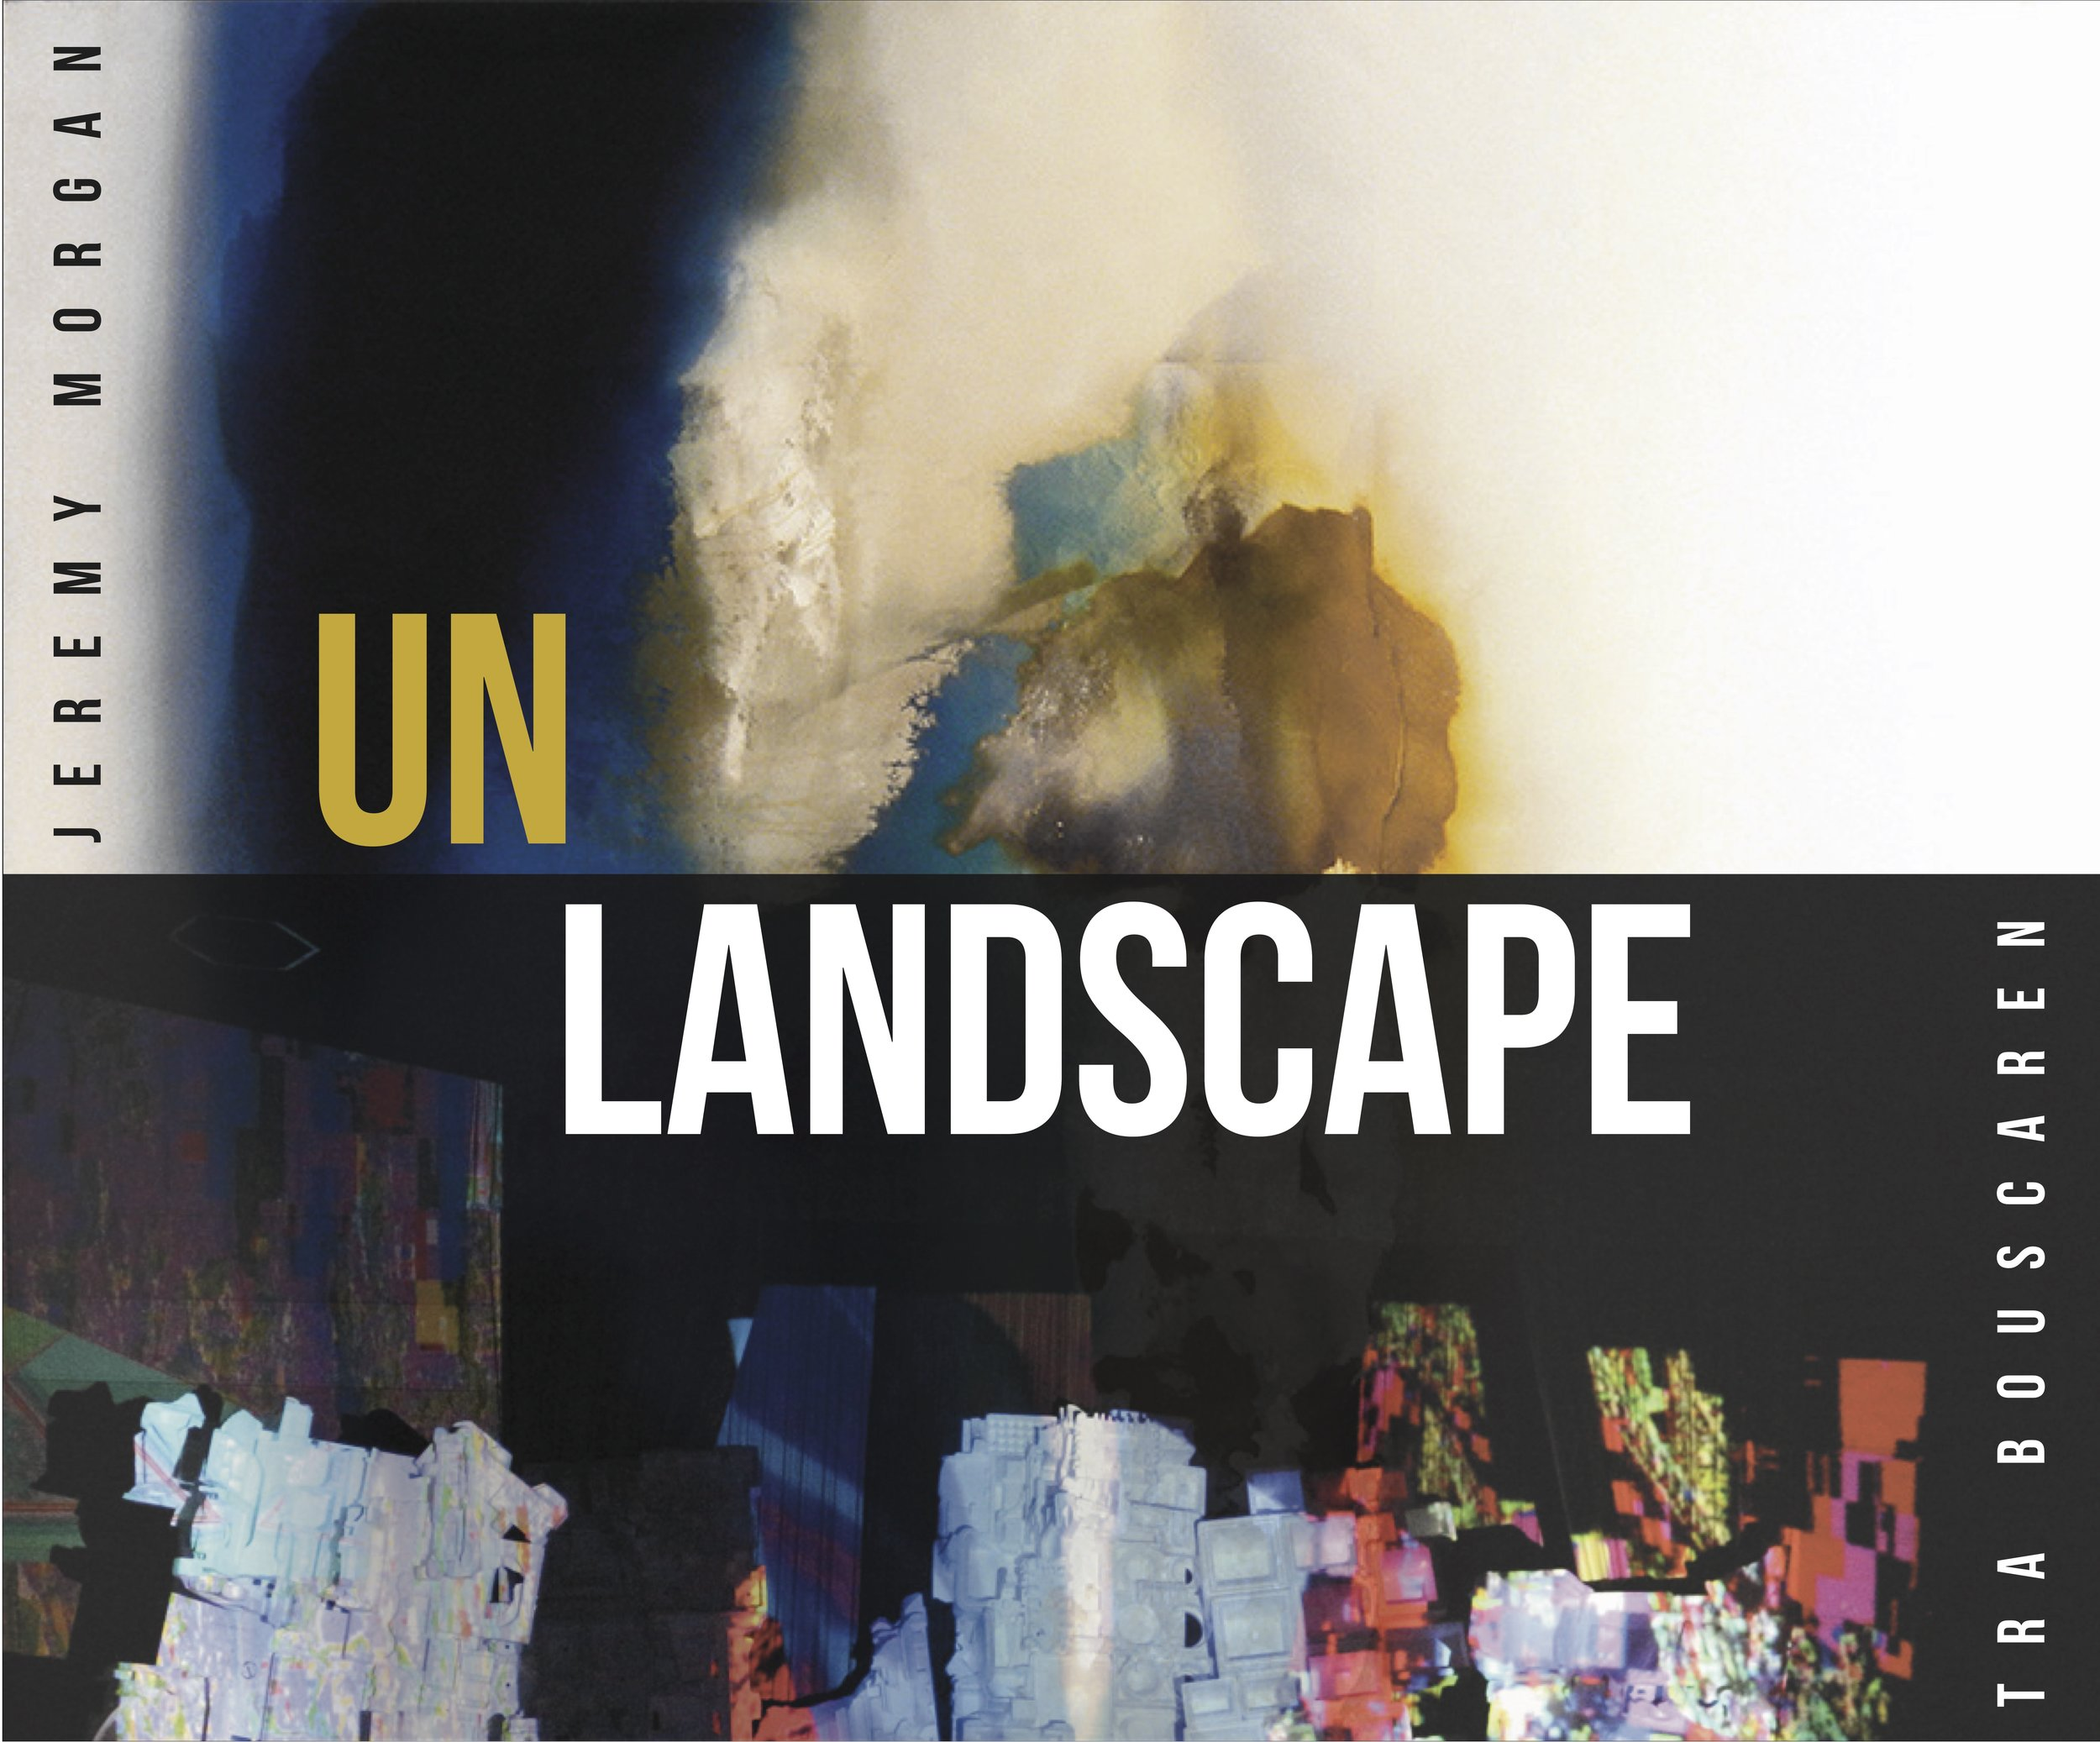 UnLandscape Intro Label.jpg